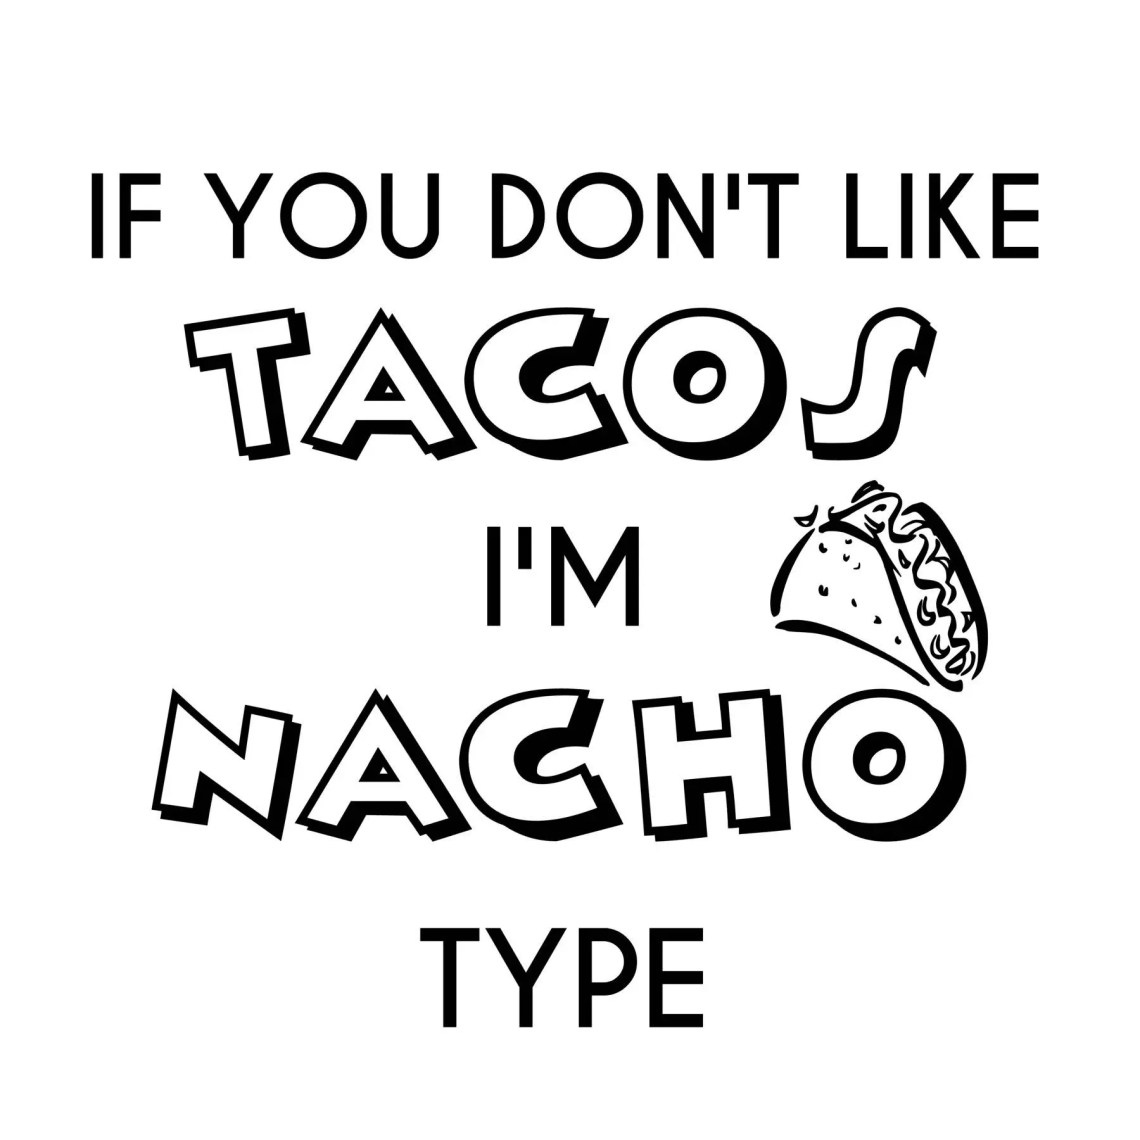 Download I Love Tacos SVG Cut File Cutting File Nacho Type SVG | Etsy